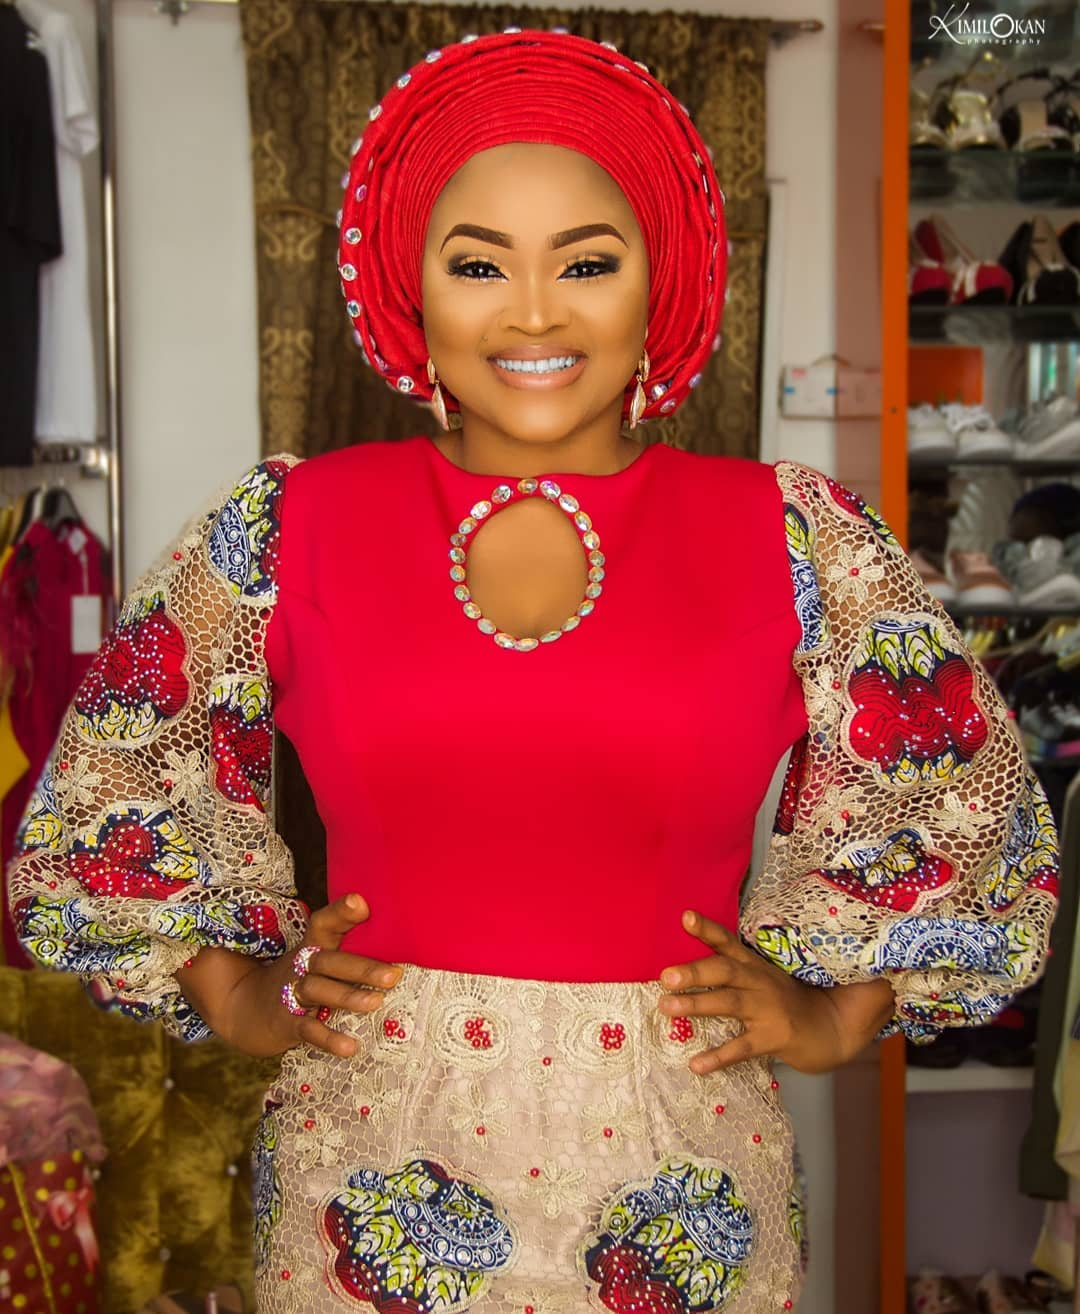 big-girl-mighty-god-mercy-aigbe-slays-in-owambe-look-as-she-shows-off-her-big-sister